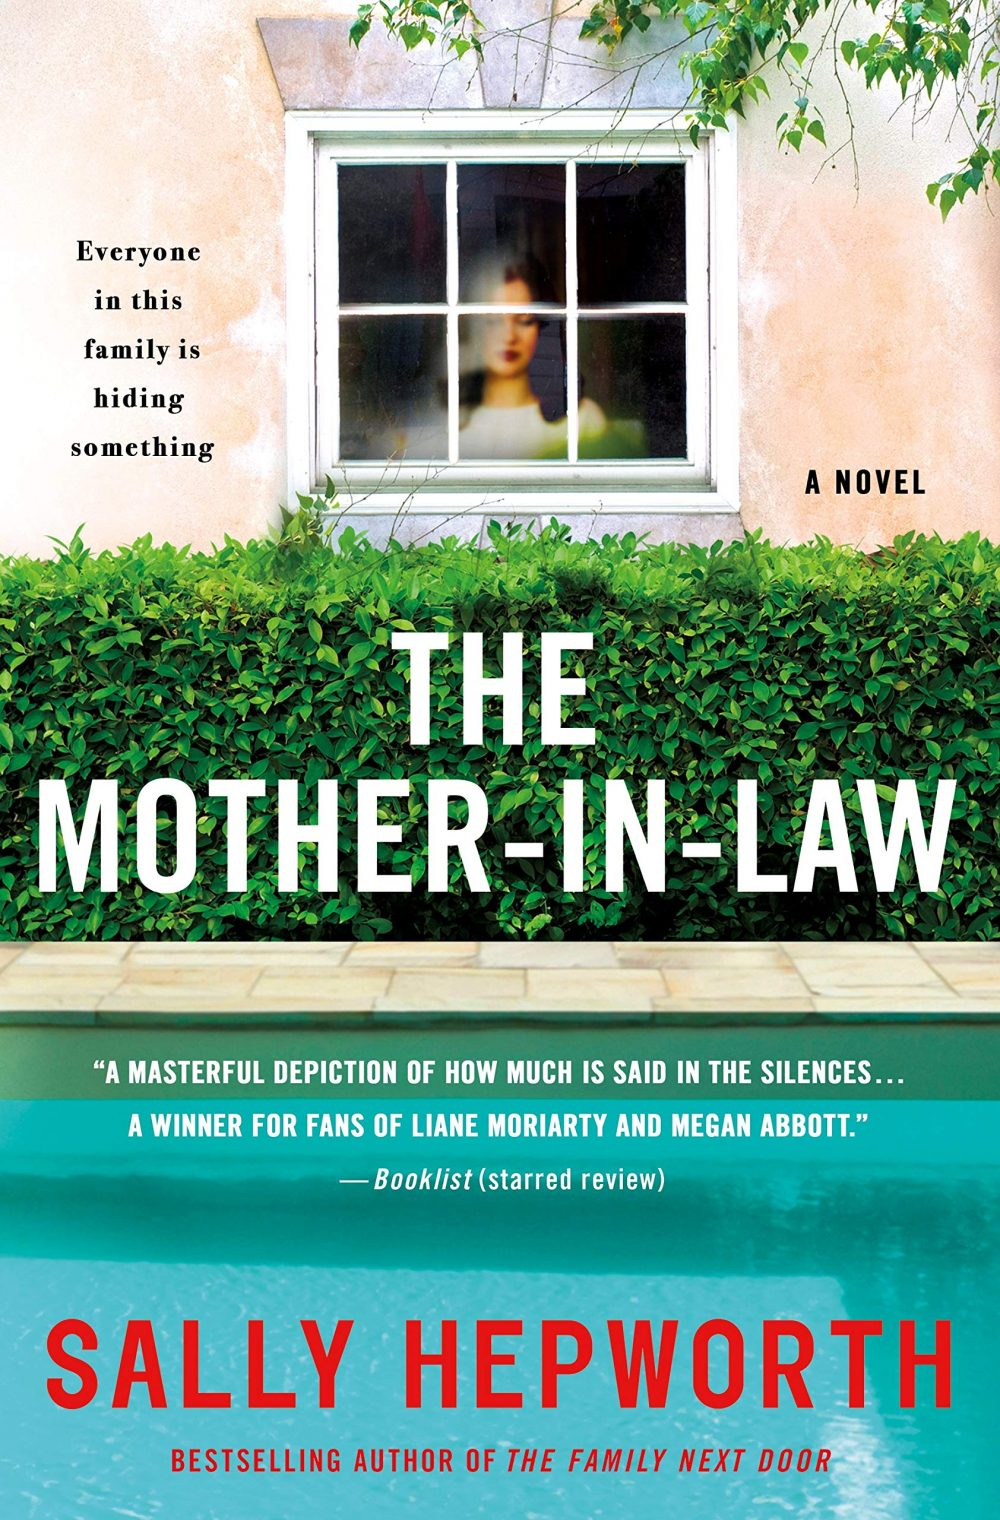 The Mother in Law by Sally Hepworth